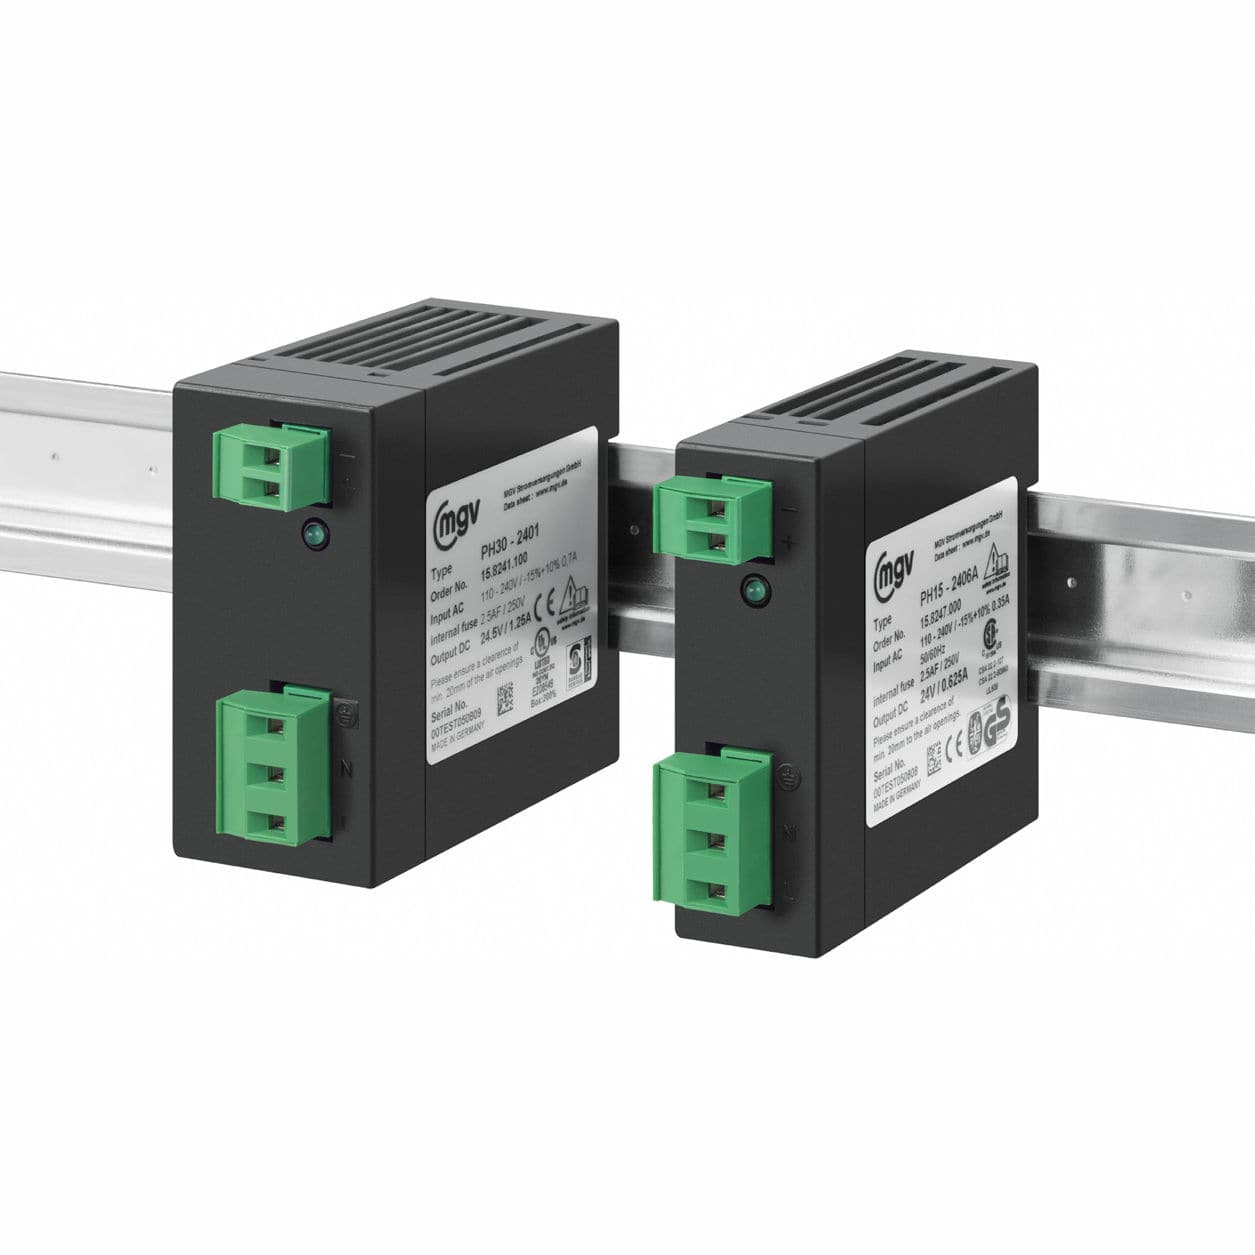 Ac Dc Power Supply Single Output Din Rail With Short Circuit Protection Ph15 Ph30 Series